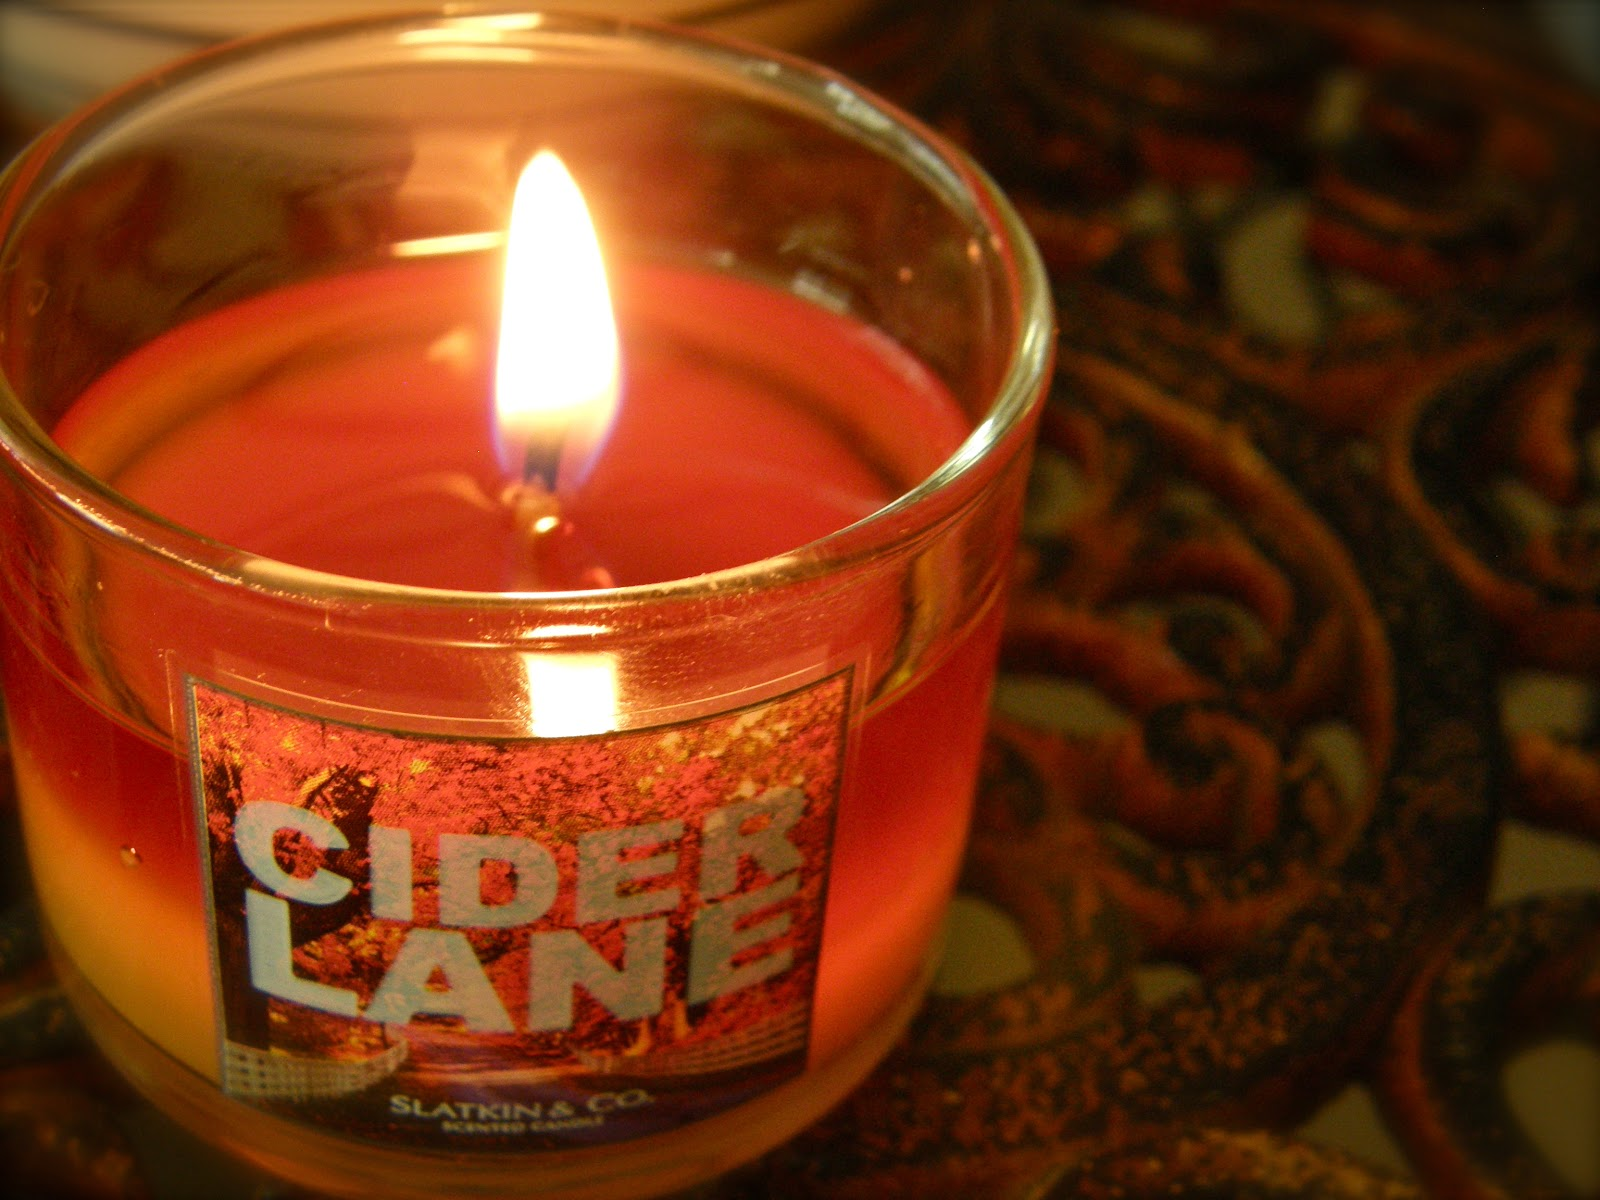 can can dancer bath body works fall mini candle. Black Bedroom Furniture Sets. Home Design Ideas